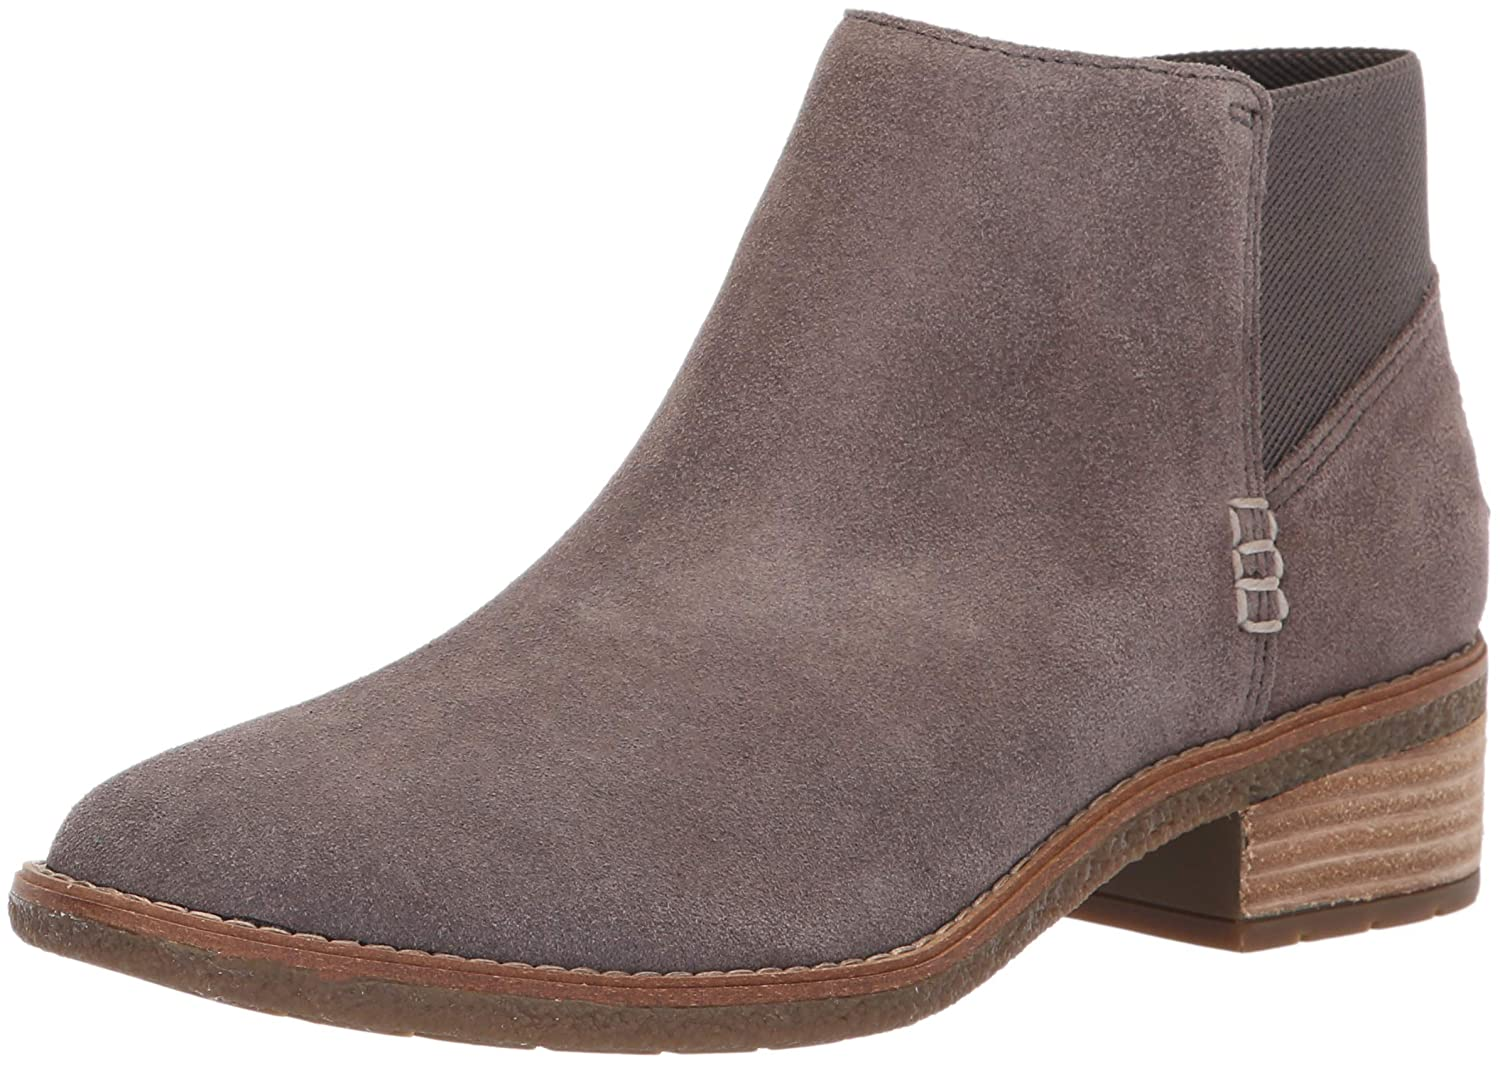 Sperry Top-Sider Womens Sperry Maya Lani Ankle Boot